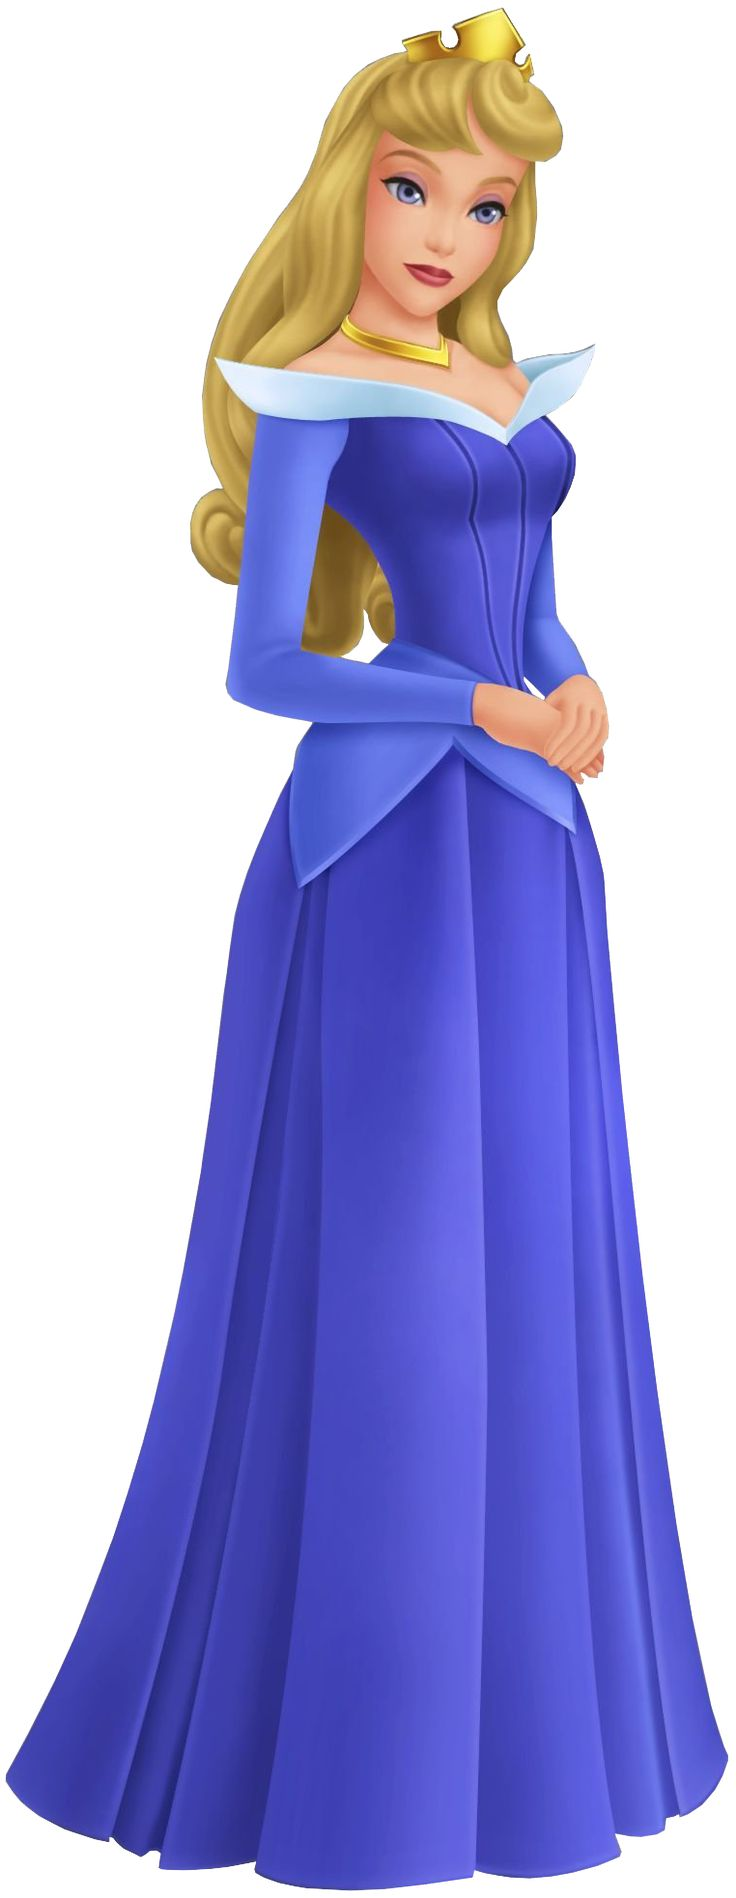 Aurora as she appears in the Kingdom Hearts series.